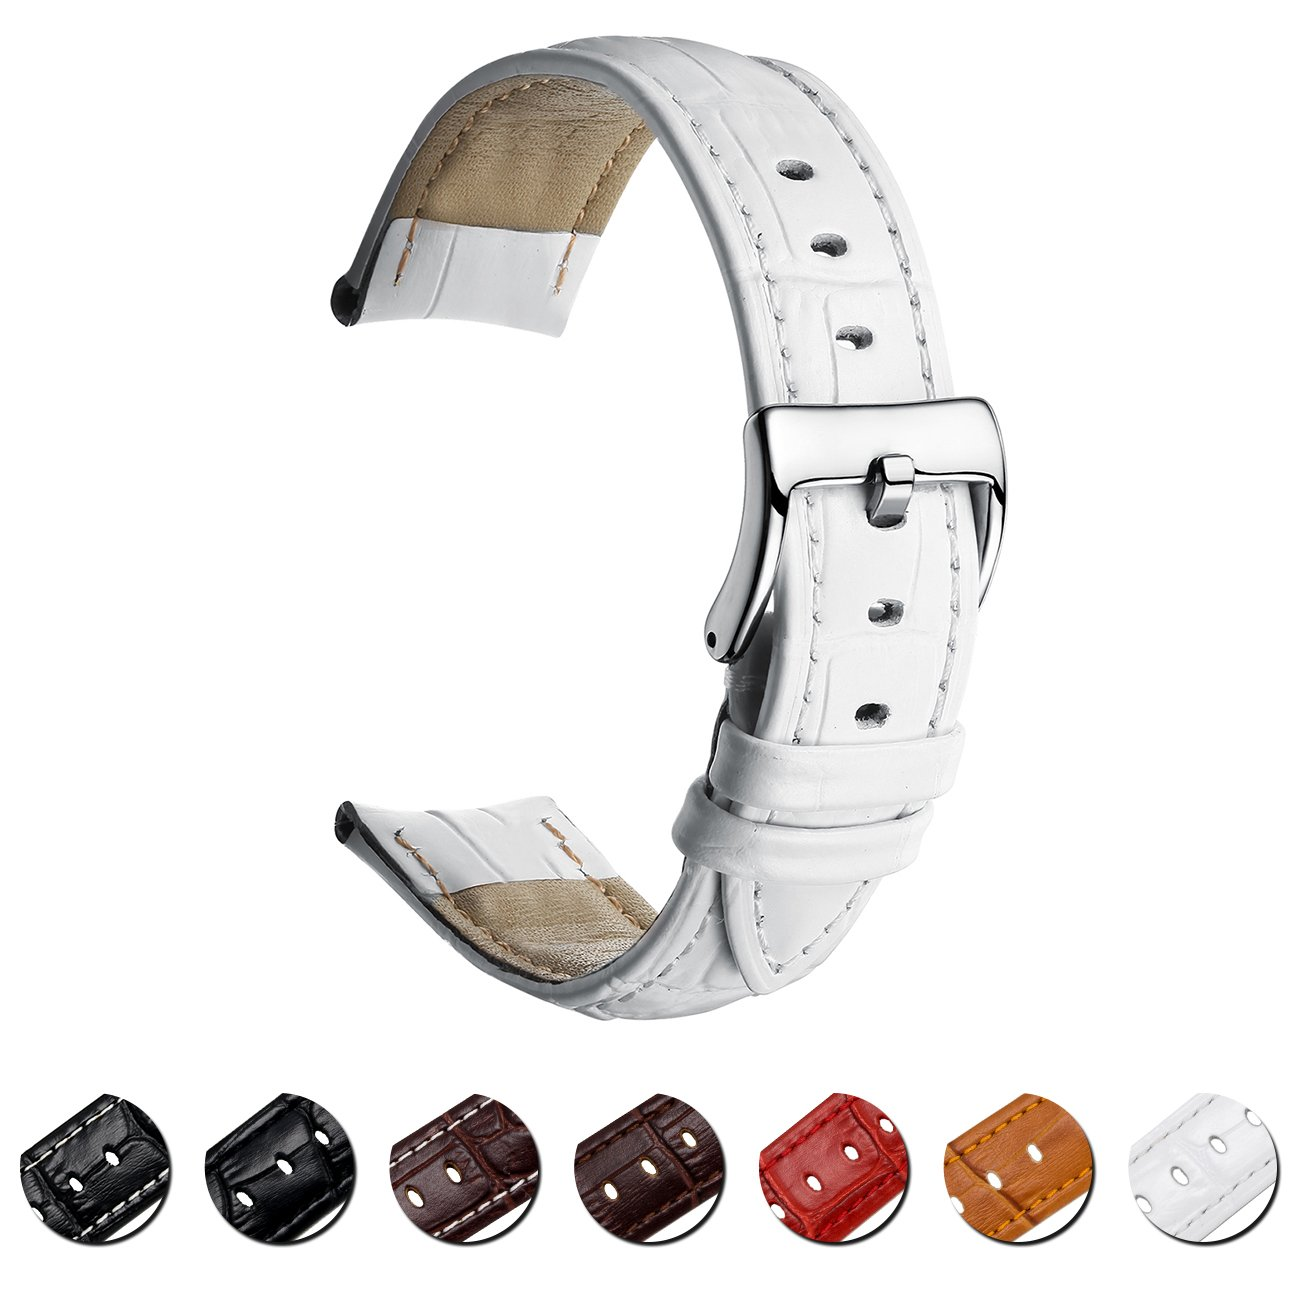 MEGALITH Leather Watch Band Top Calf Grain Genuine Leather Watch Strap 16mm 18mm 20mm 22mm Bands for Men and Women